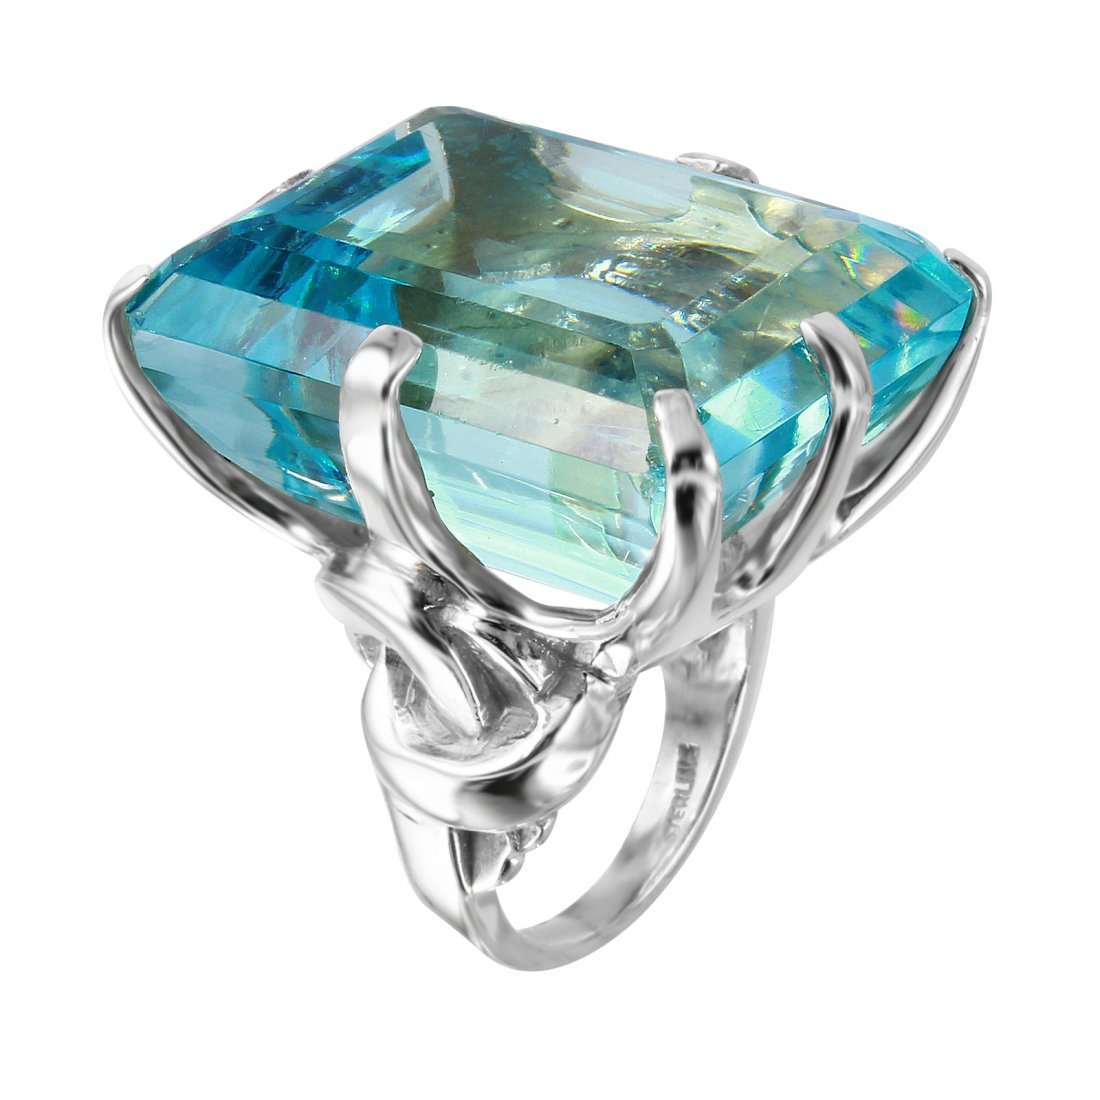 Aquamarine Sterling Silver Cocktail Ring, Size 6 - 2